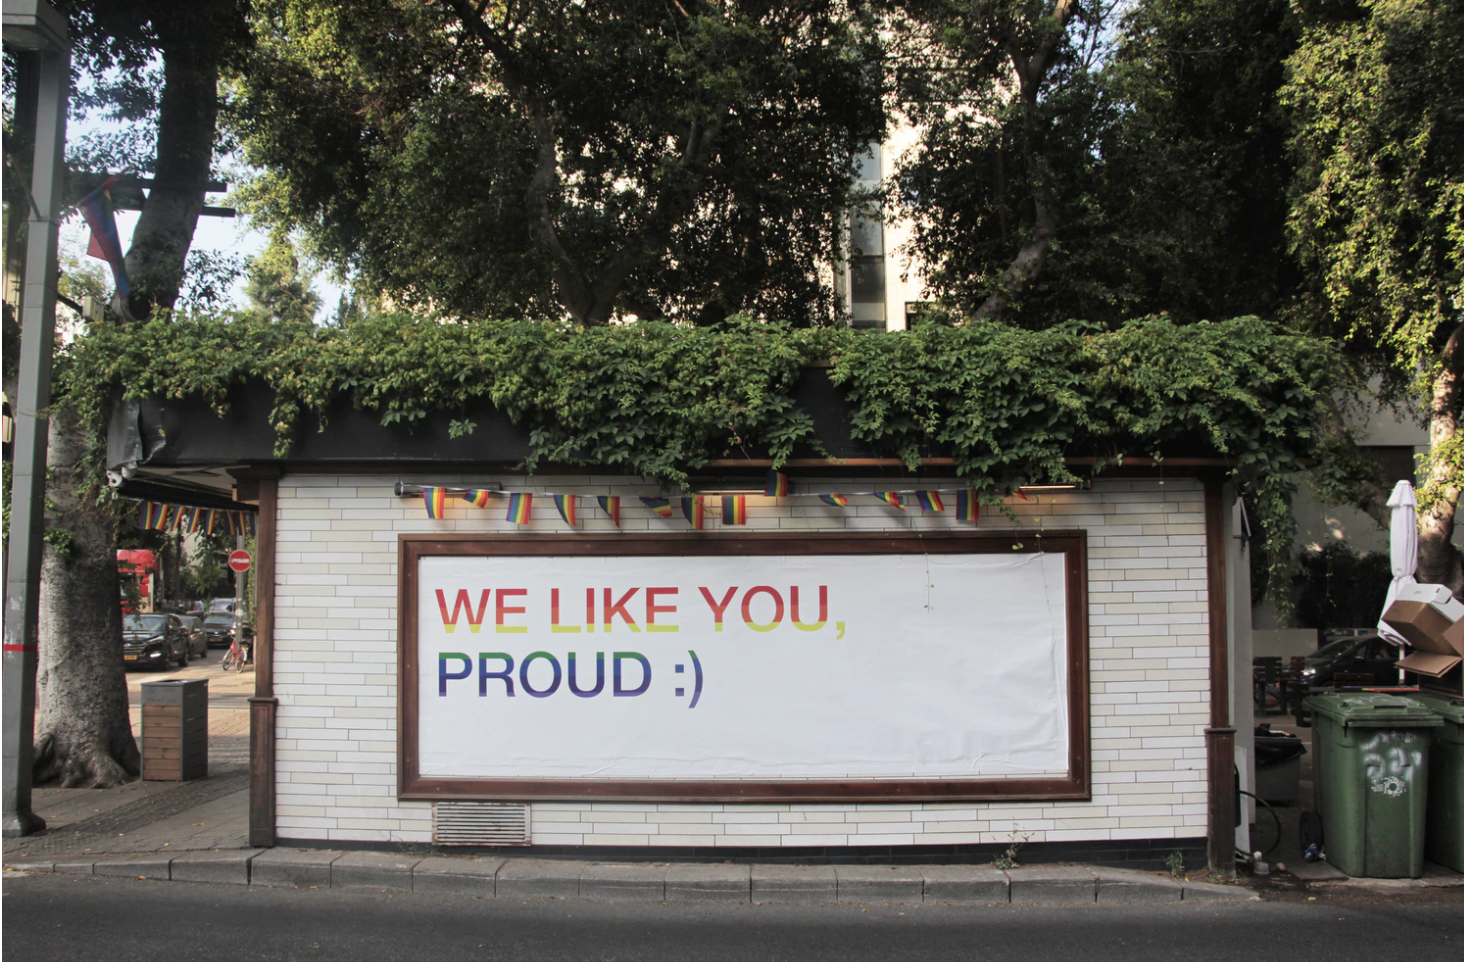 """sign on side of road that says """"we like you proud :)"""""""